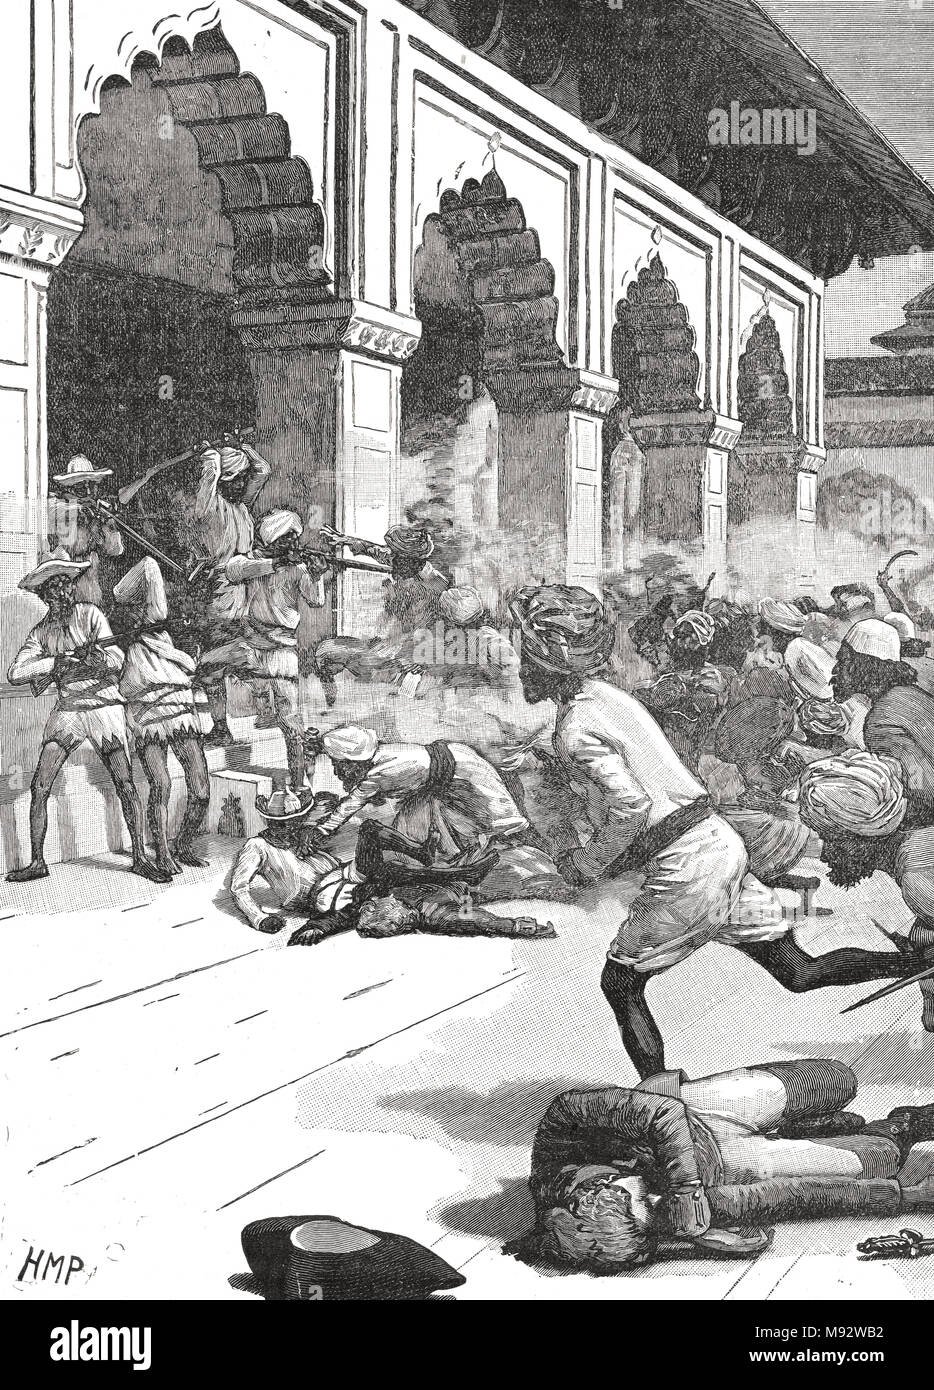 Arrest of the Rajah of Benares, Chait Singh, August 1781. Benares, India present day Varanasi, also known as Banaras - Stock Image